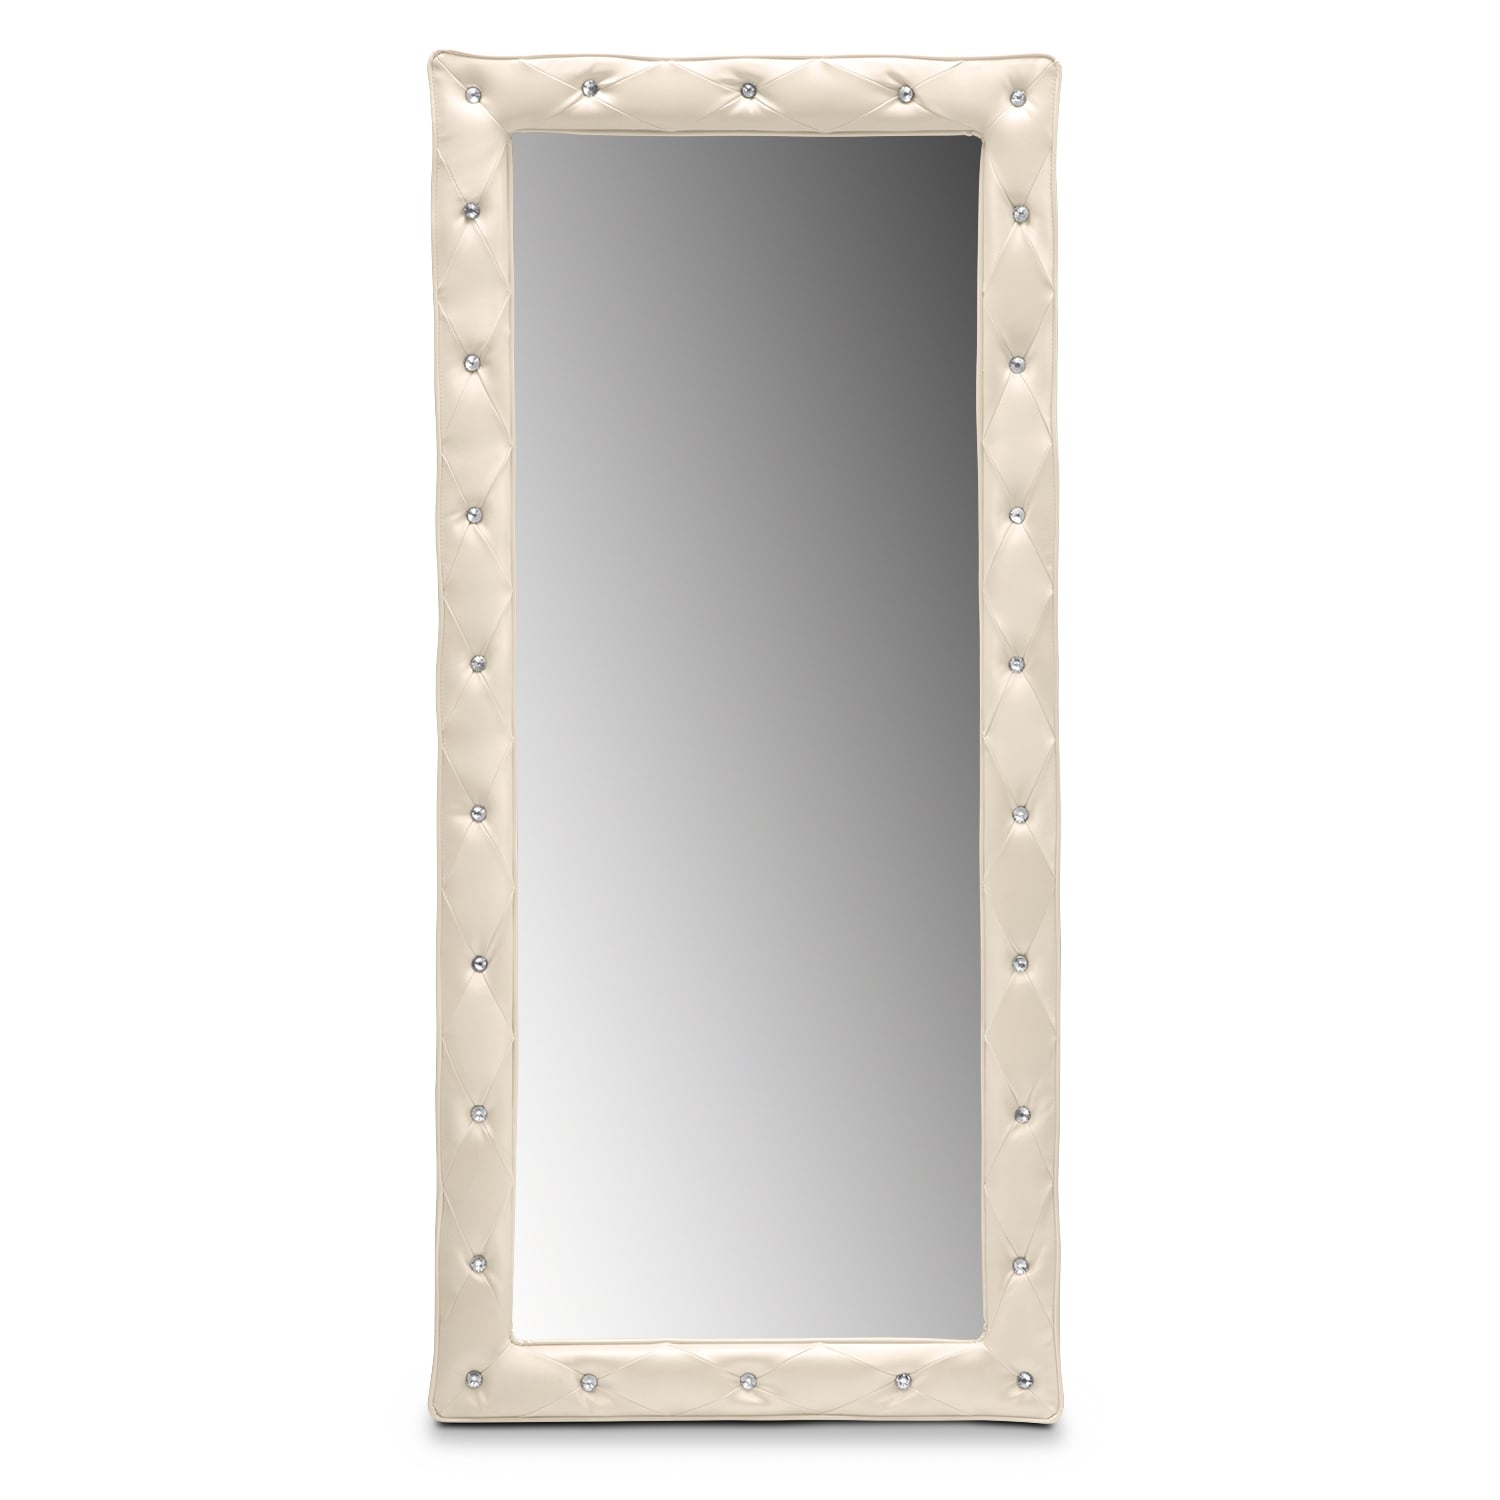 Kids Furniture - Valerie Pearl Floor Mirror